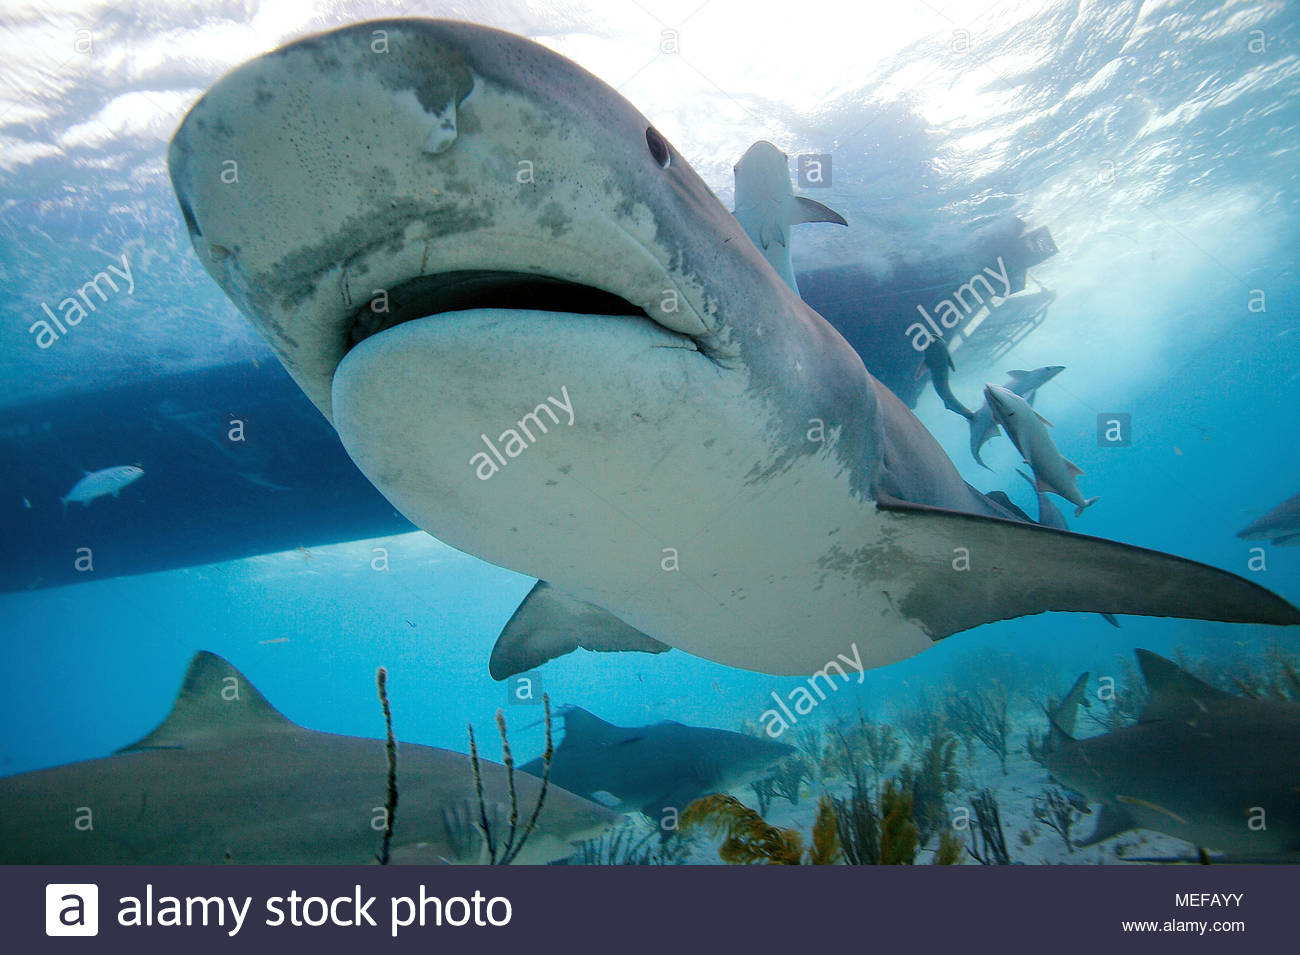 Tiger shark (Galeocerdo cuvier) with live sharksucker or slender sharksucker (Echeneis naucrates), Bahamas - Stock Image